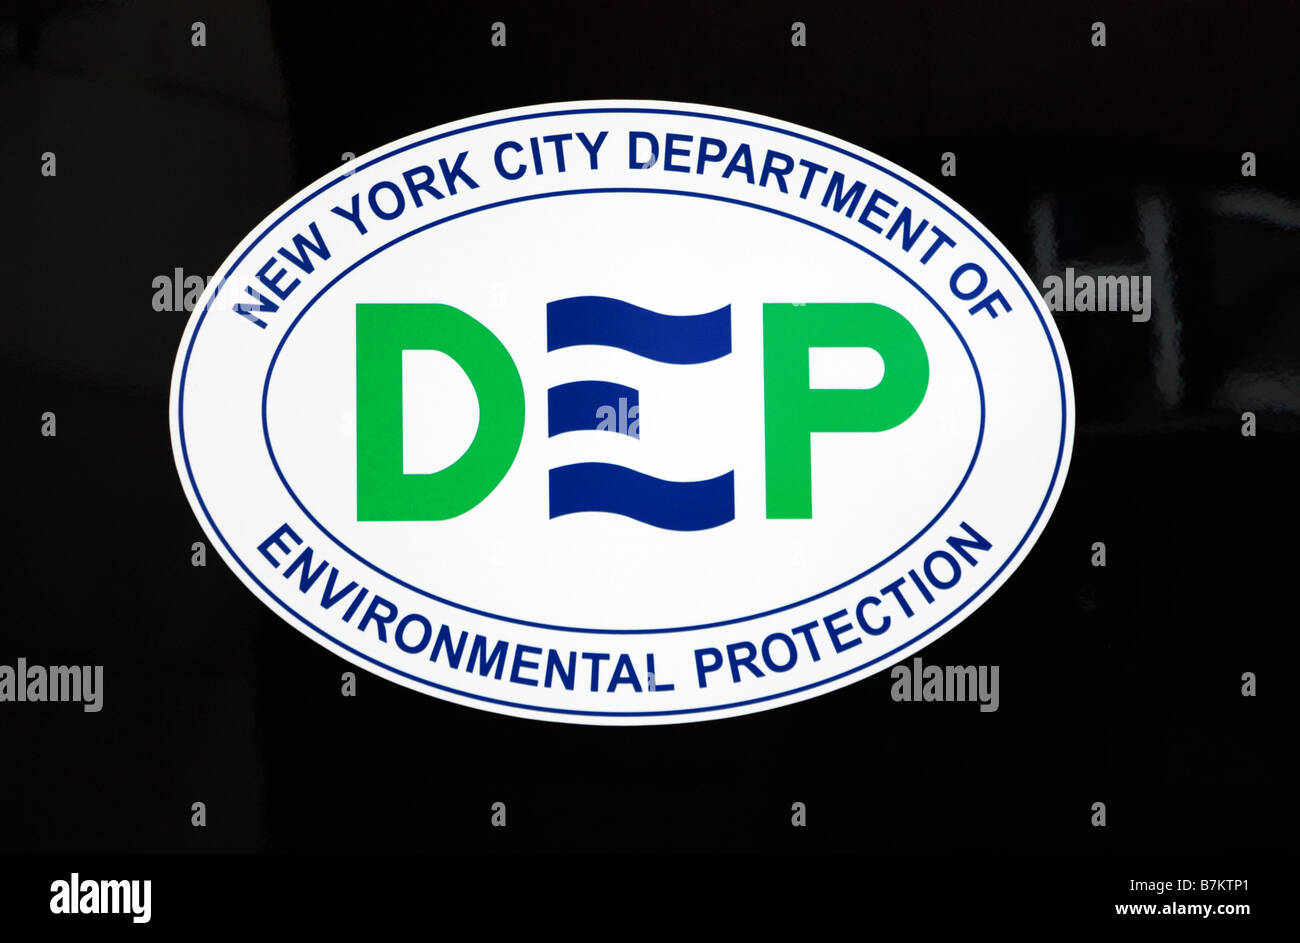 New York City Department of Environmental Protection logo on its vehicle - Stock Image